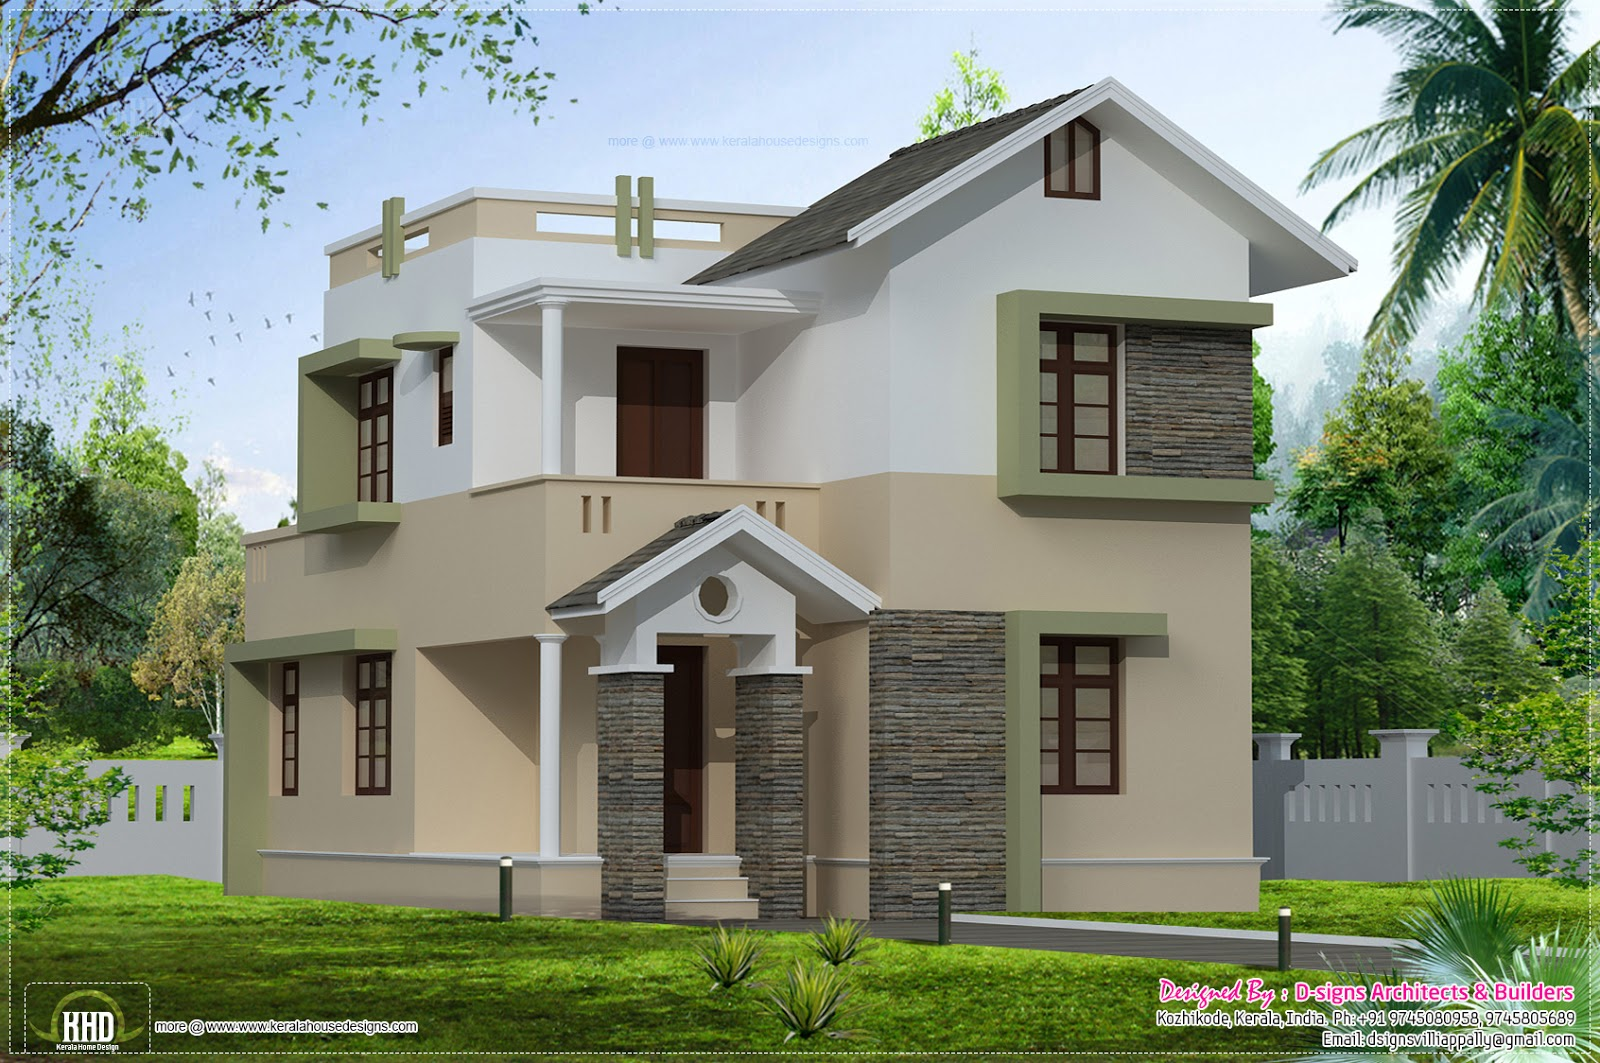 Front elevation of small houses home design and decor for Home plan elevation